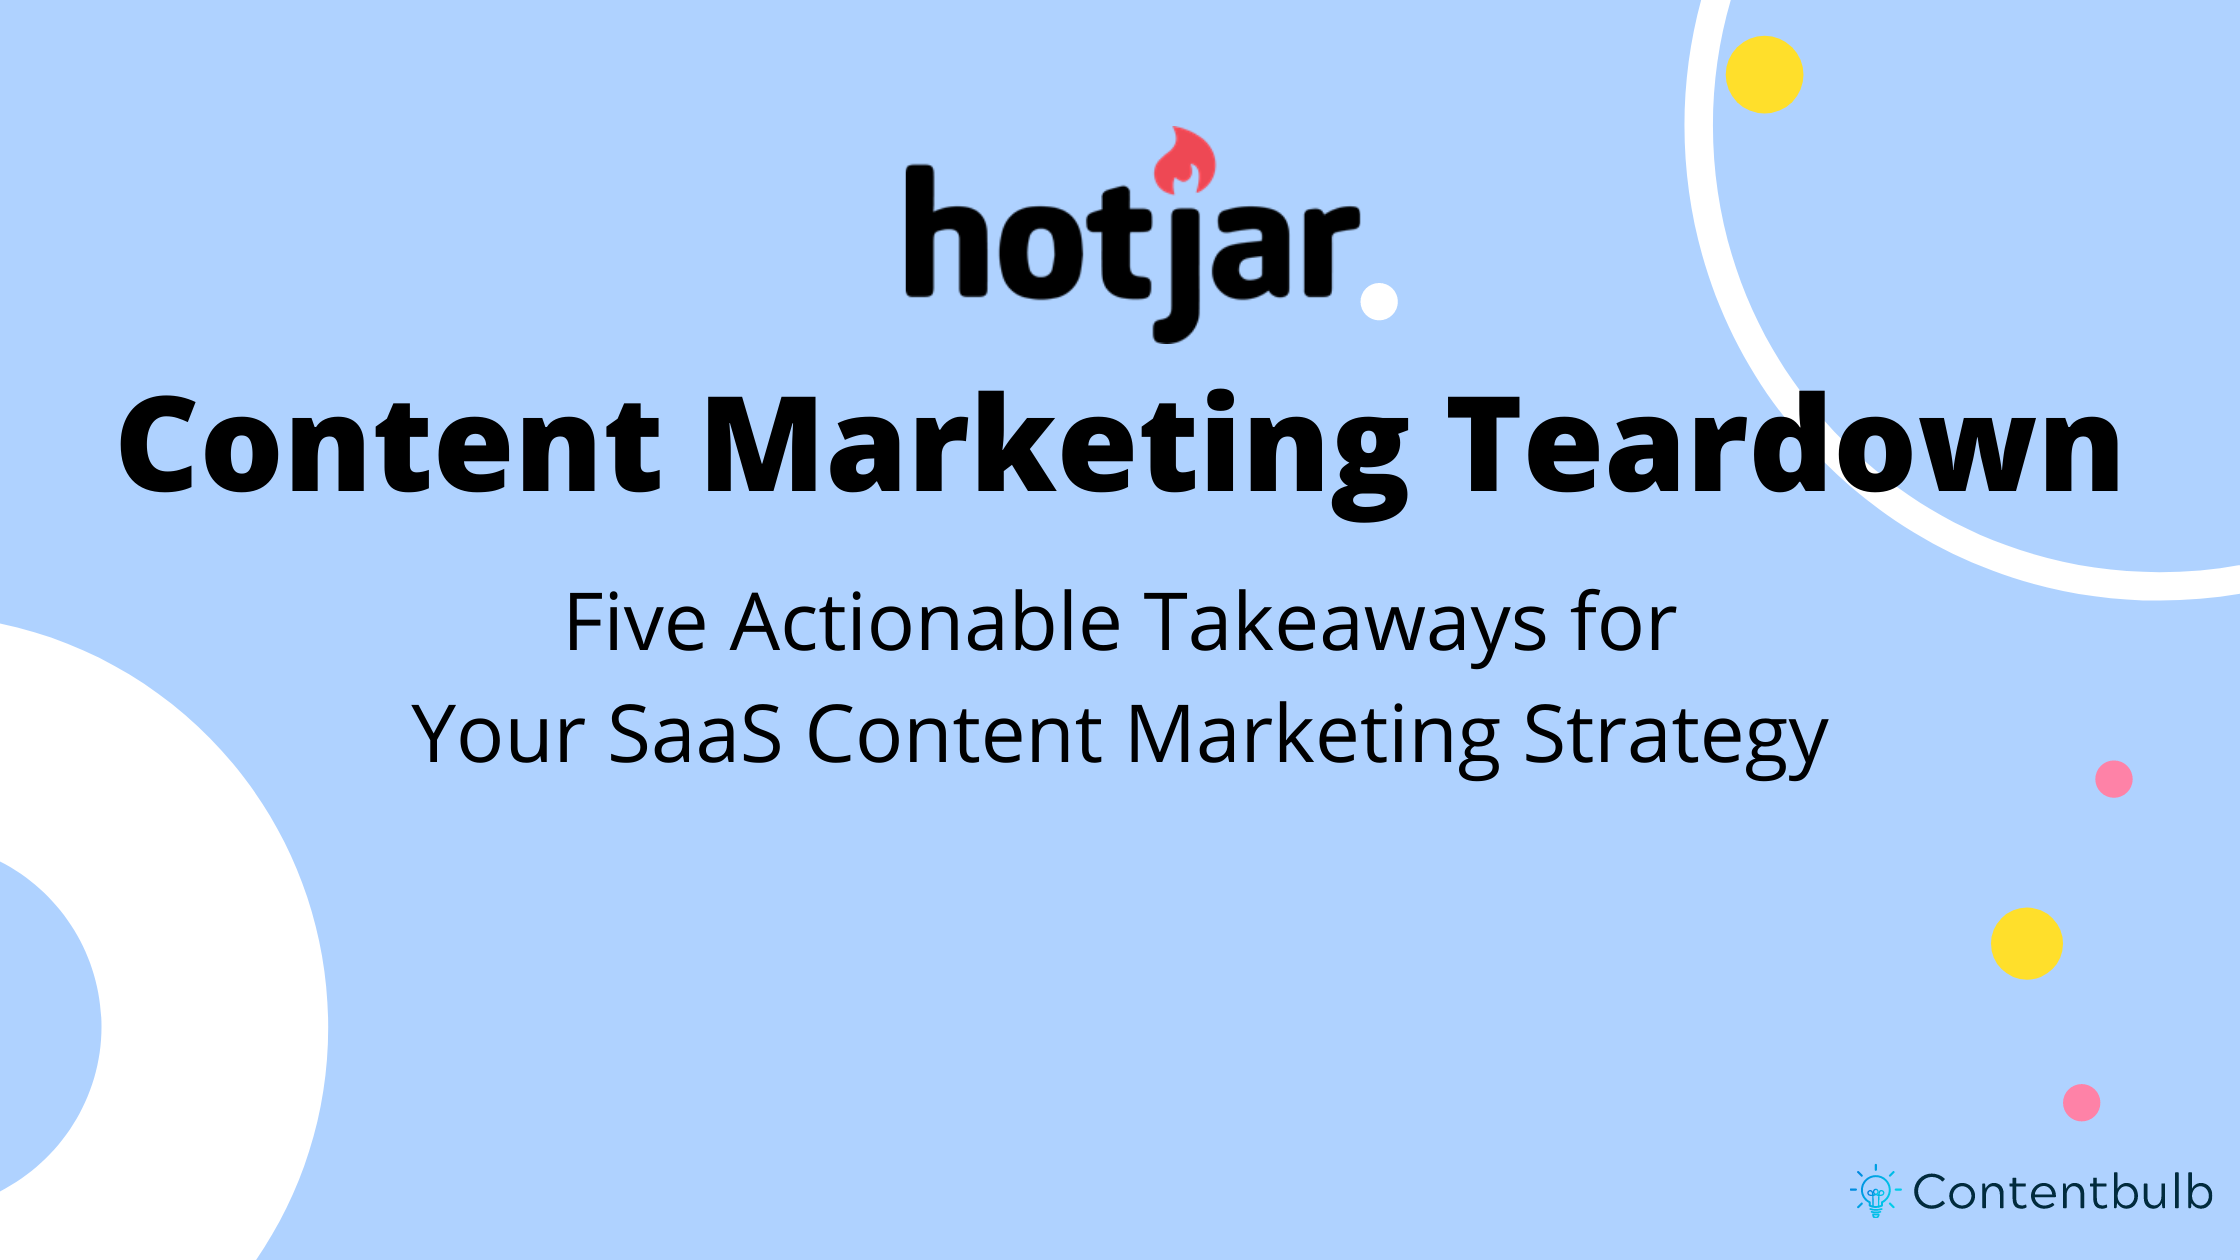 Hotjar Content Marketing Teardown + 5 Takeaways